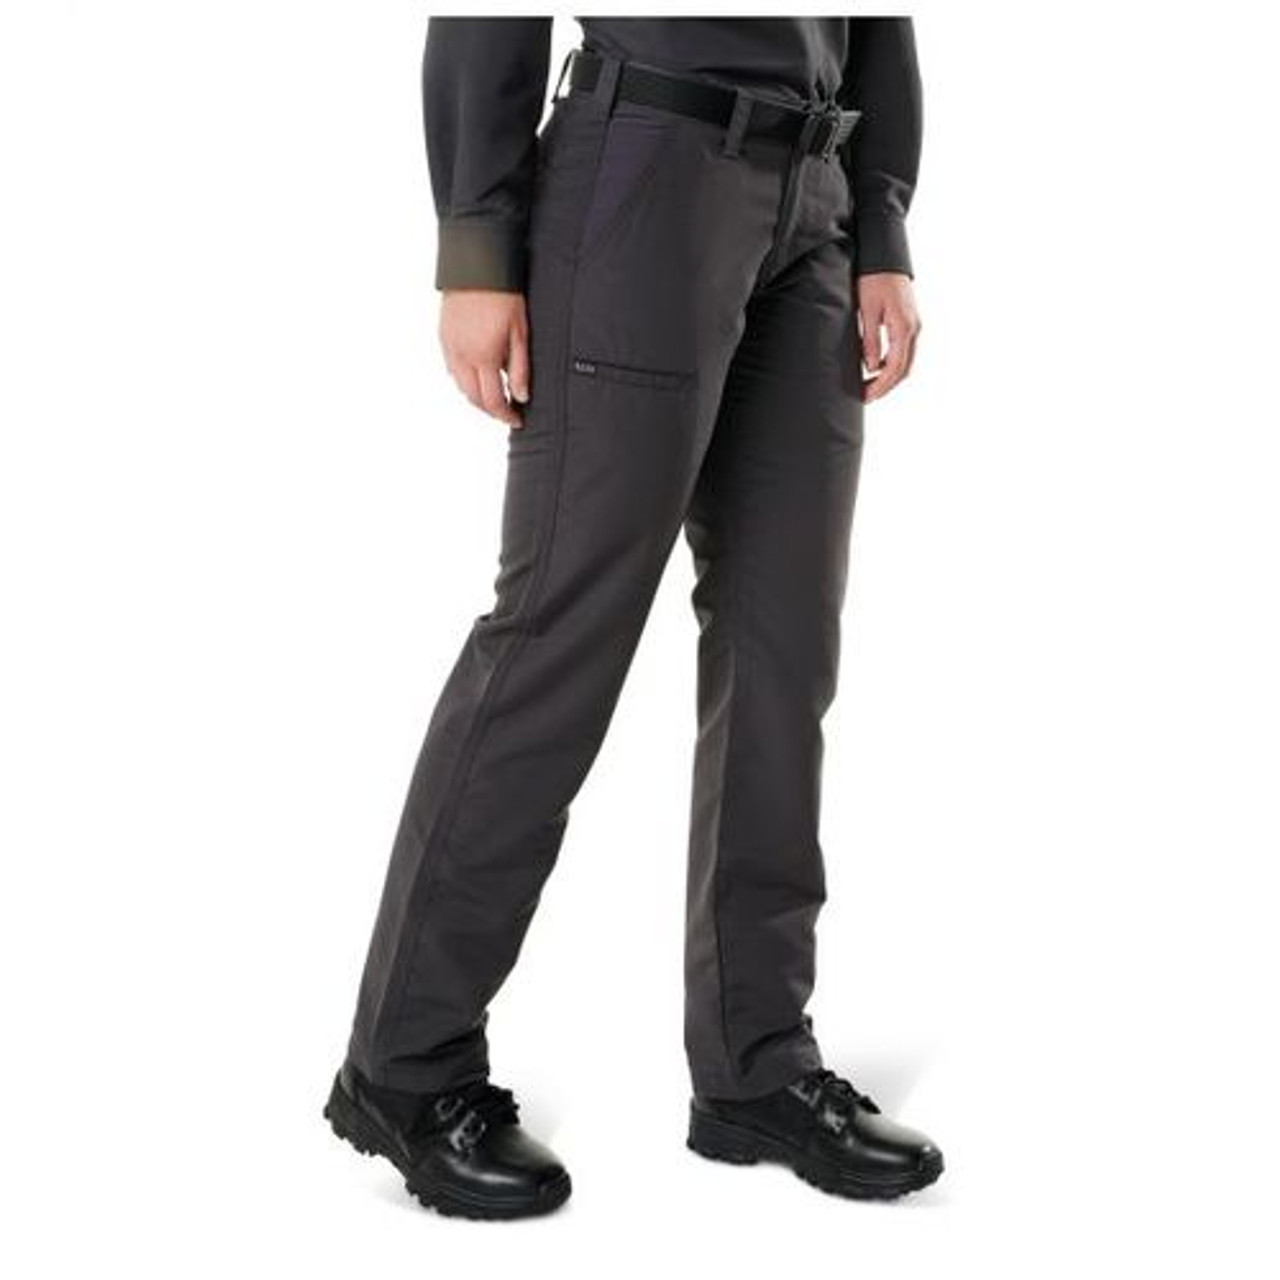 5.11 Tactical 64420 Women's Fast-Tac Urban Tactical Cargo Pants, Water Resistant, Available in Black, Charcoal, Khaki, or Dark Navy